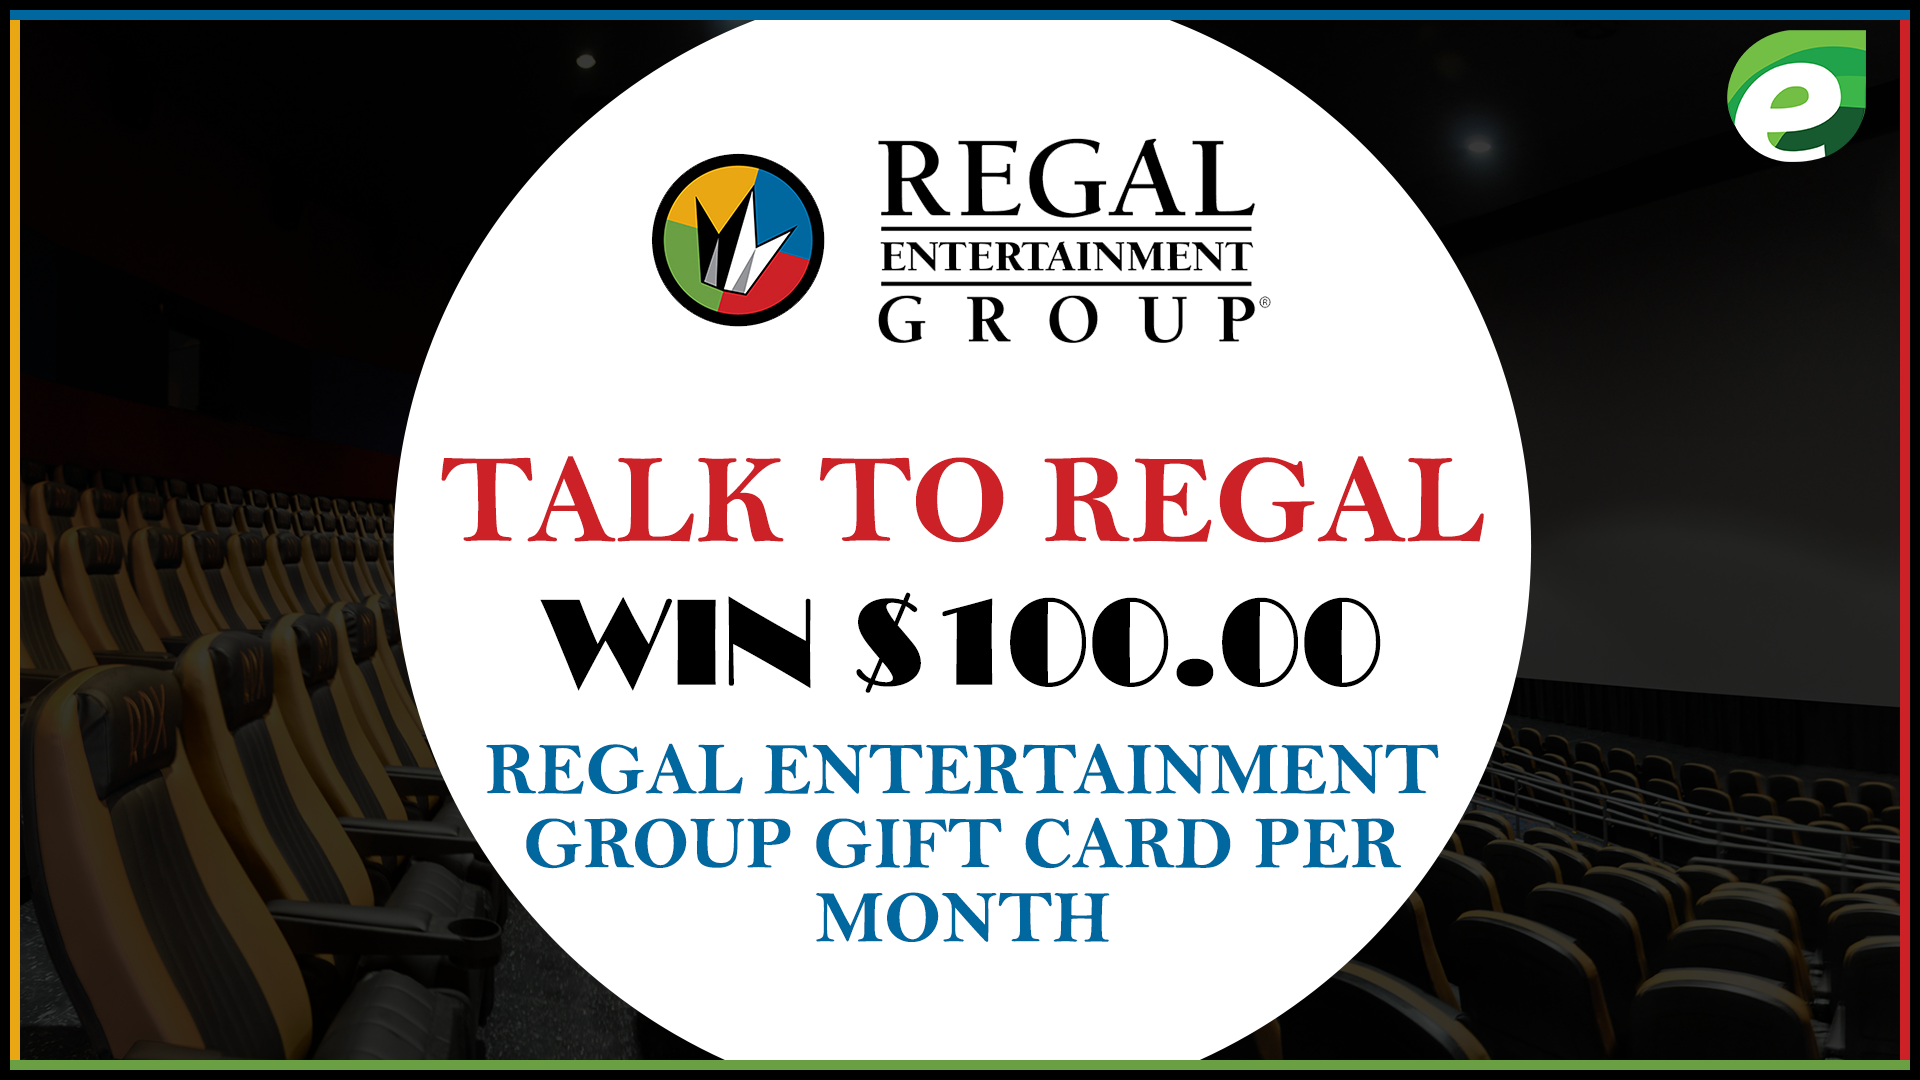 talktoregal survey talk to regal is a customer satisfaction survey at wwwtalktoregalcom or wwwregalsurveycom through which people take part in talk to